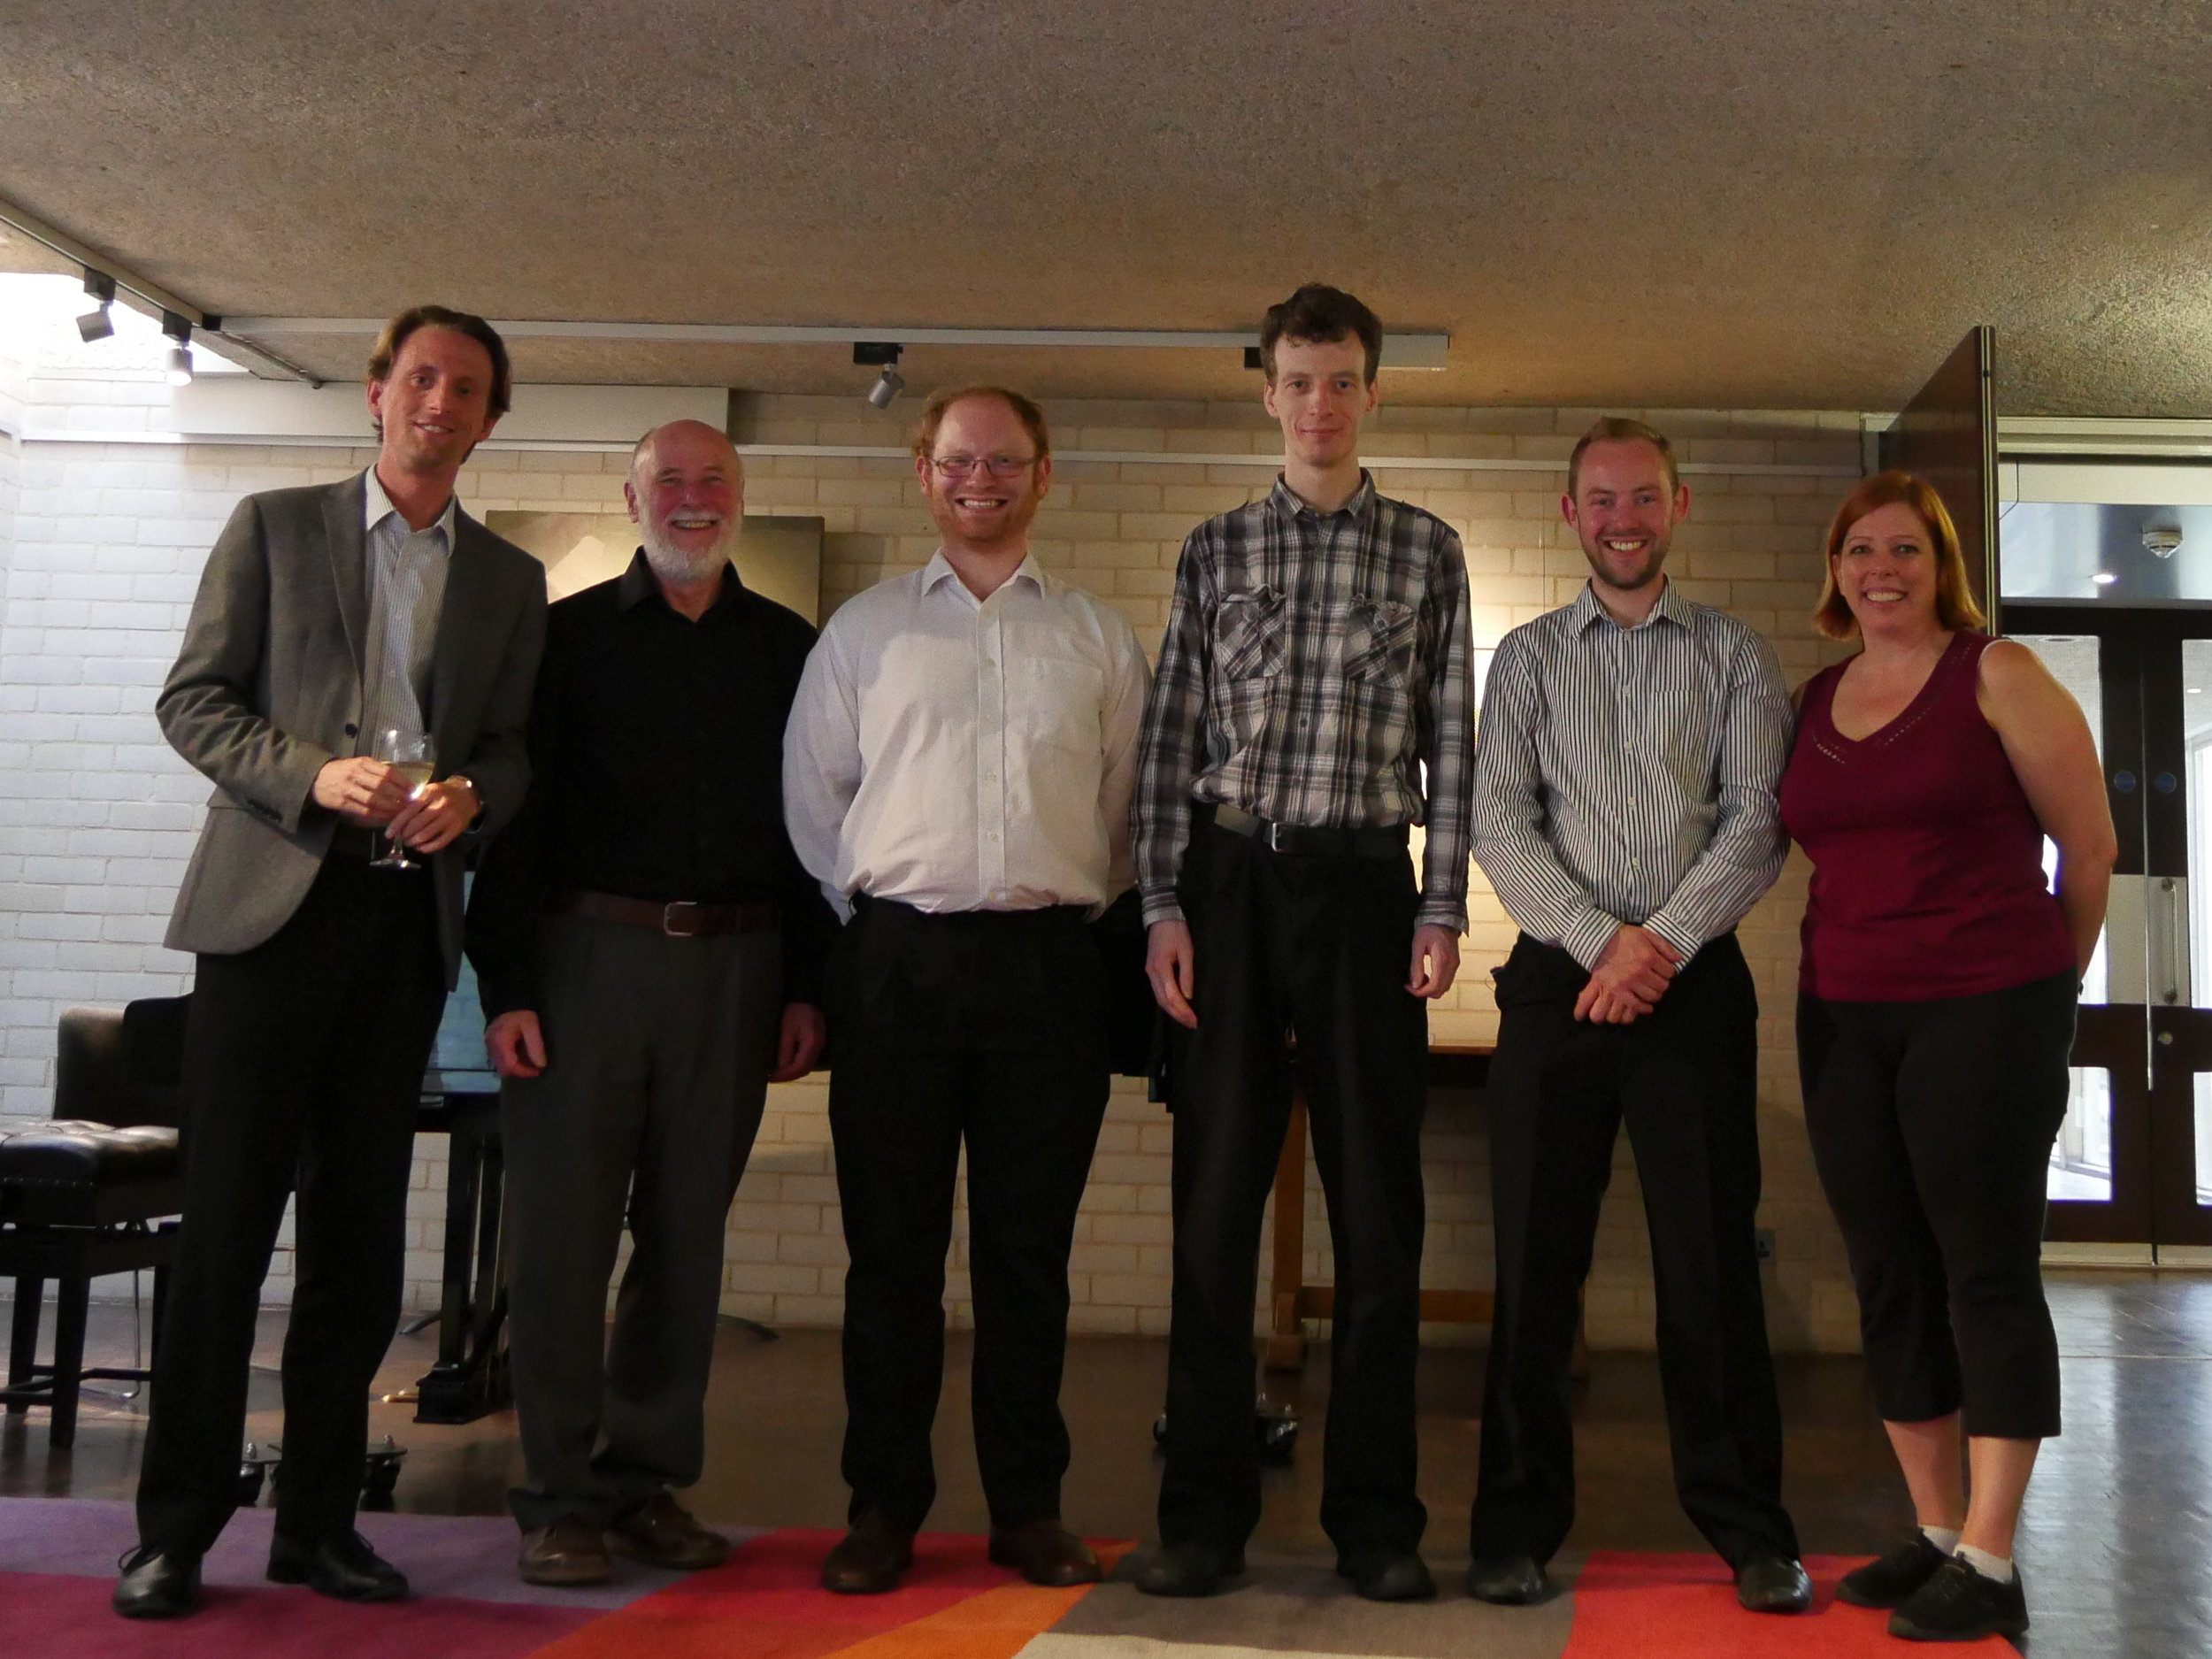 Lieder Corpus team: Mark Gotham, Dan Rootham, Bruno Bower, Peter Jonas, Will Bosworth, Leigh VanHandel